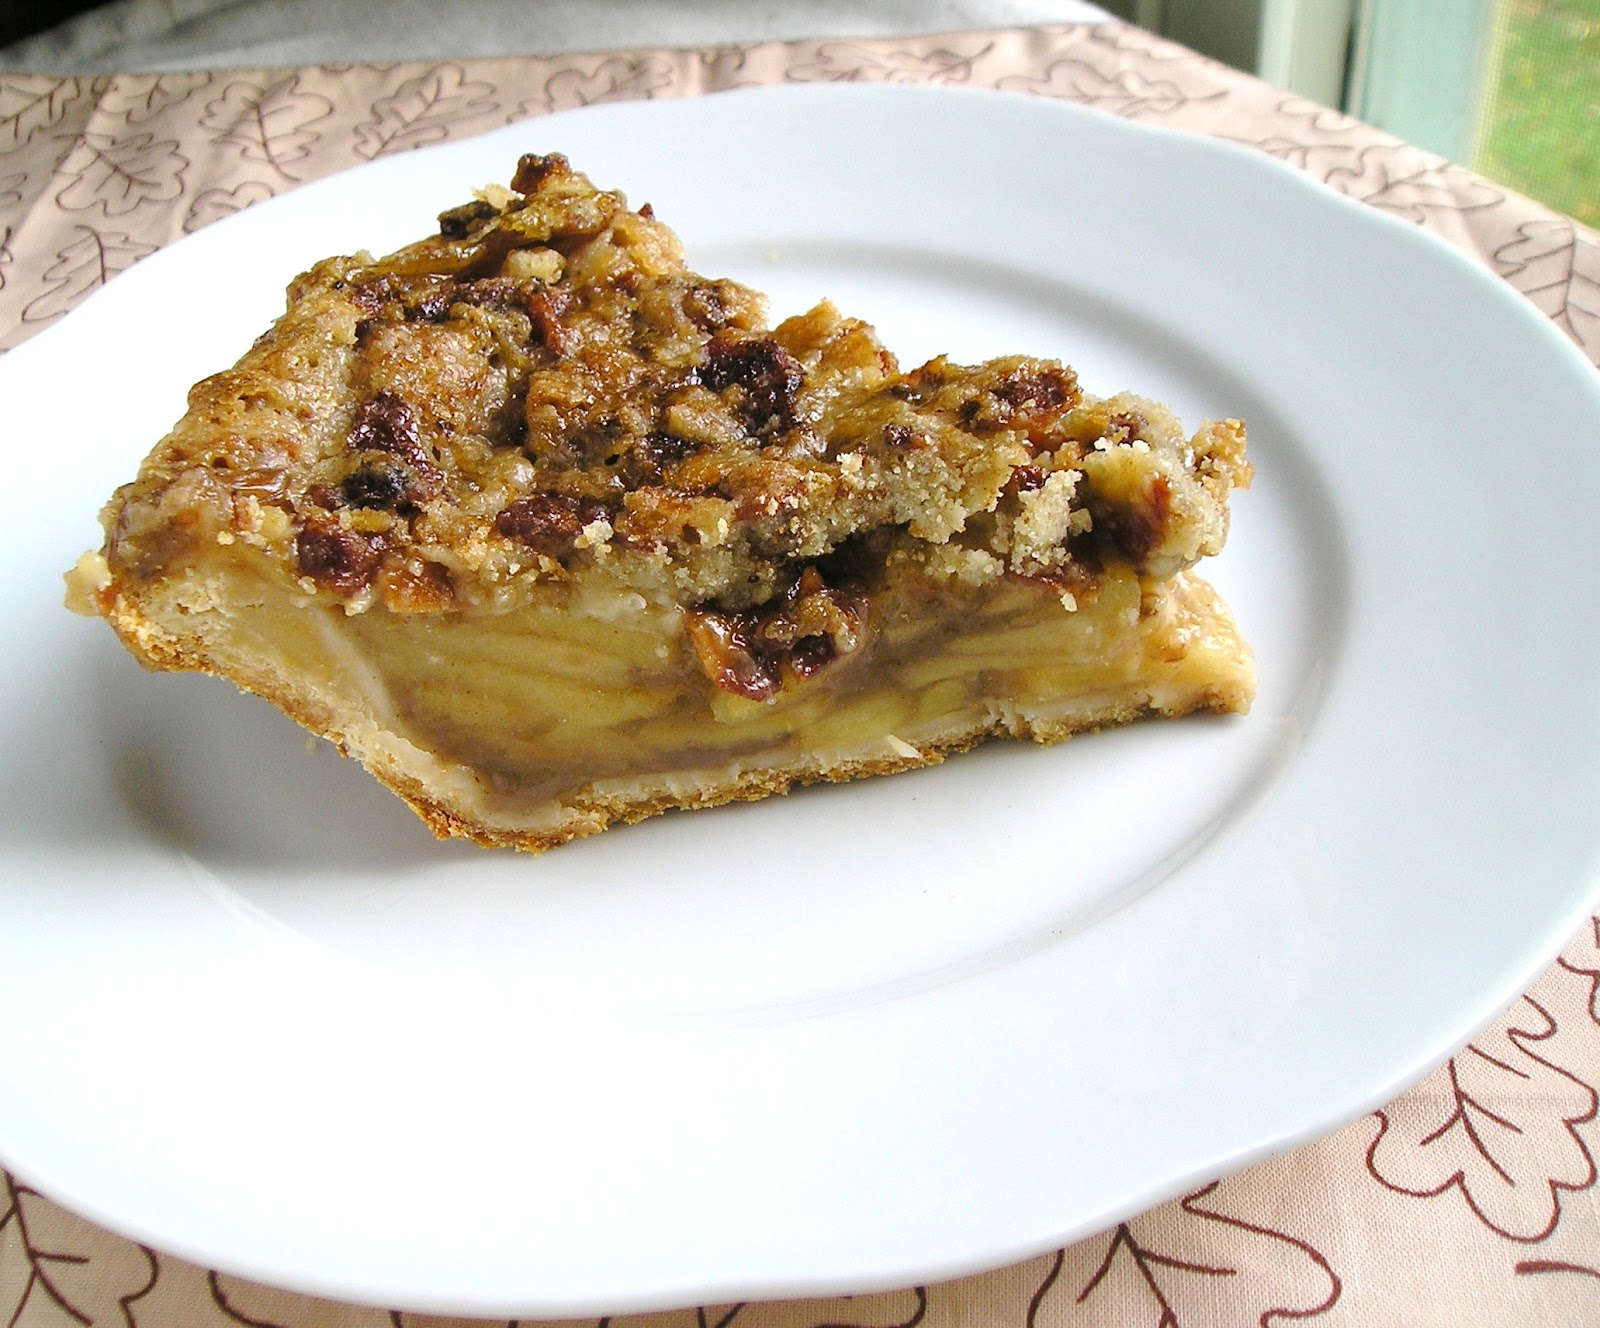 ... Cooking Challenge: Apple Pie with Cheddar Crust and Bacon Streusel